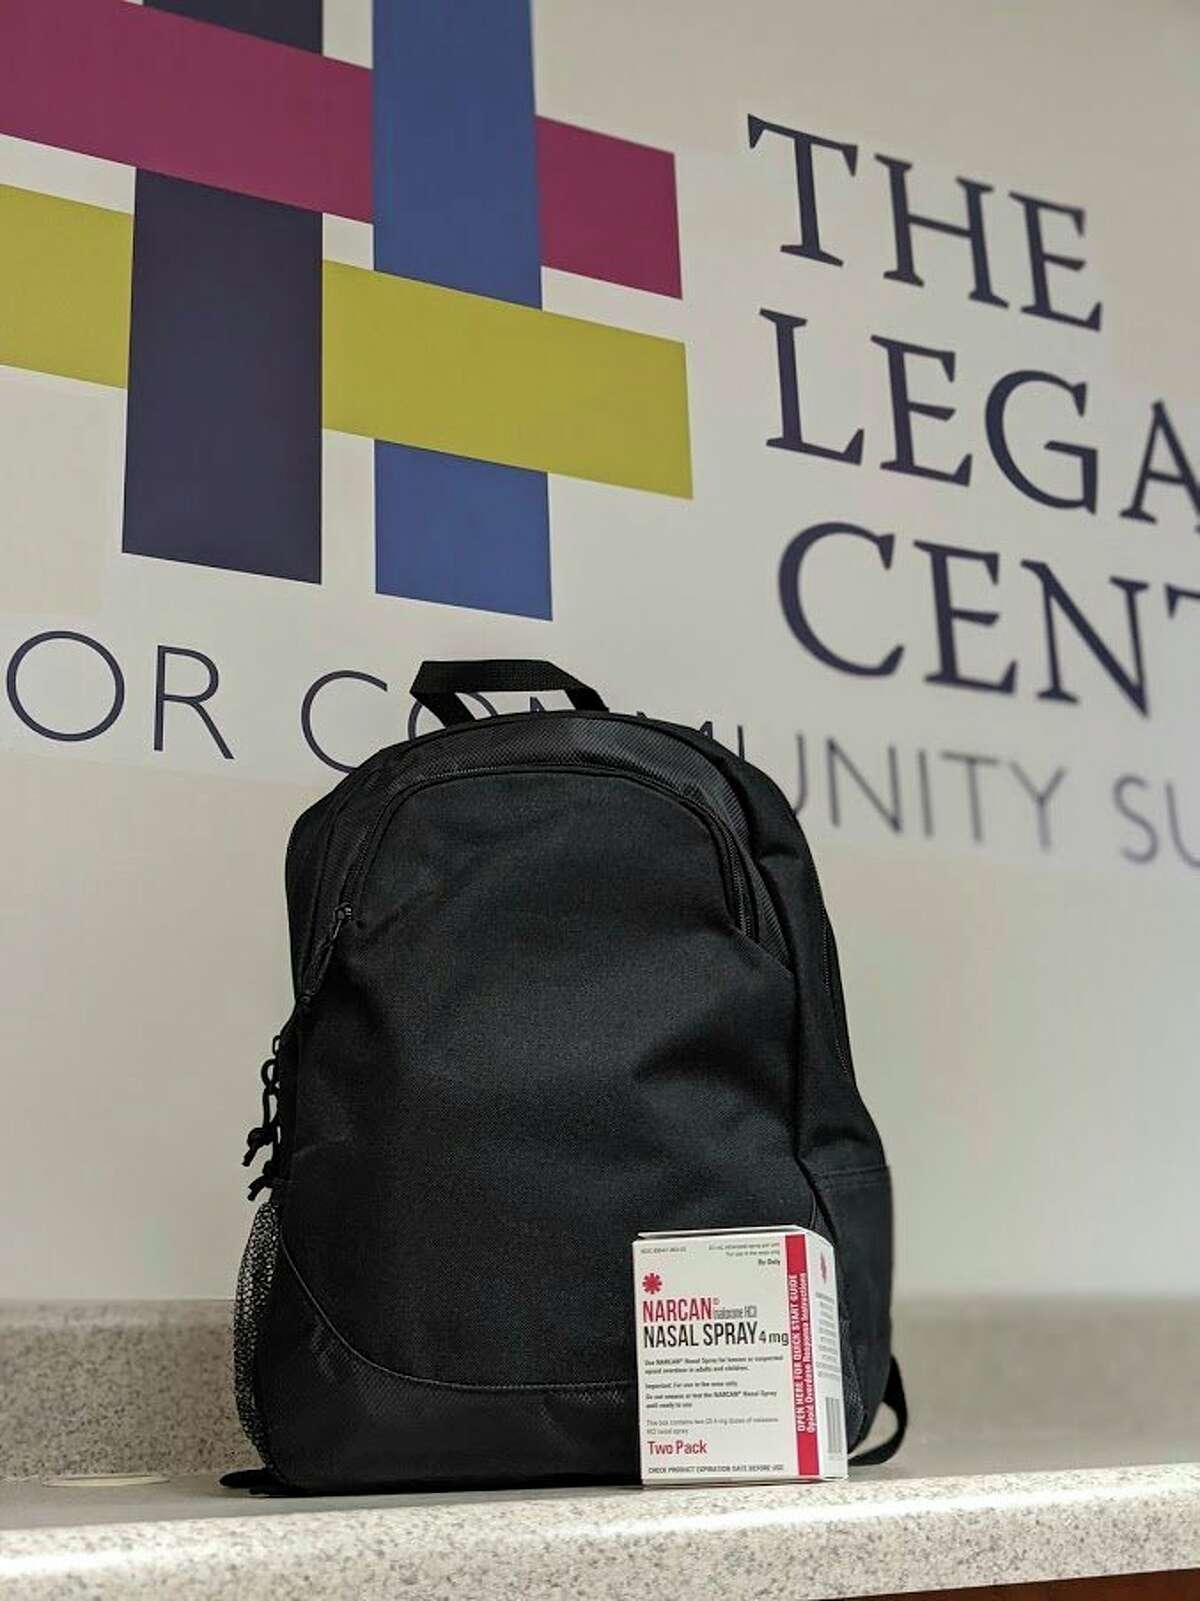 With the help of the Midland County Sheriff's Office and Forgotten Man Ministries, the Midland County Treatment and Recovery Coalition began the process of assembling backpacks that contained Narcan, an opioid overdose reversal drug, for persons exiting the jail. (Photo provided)